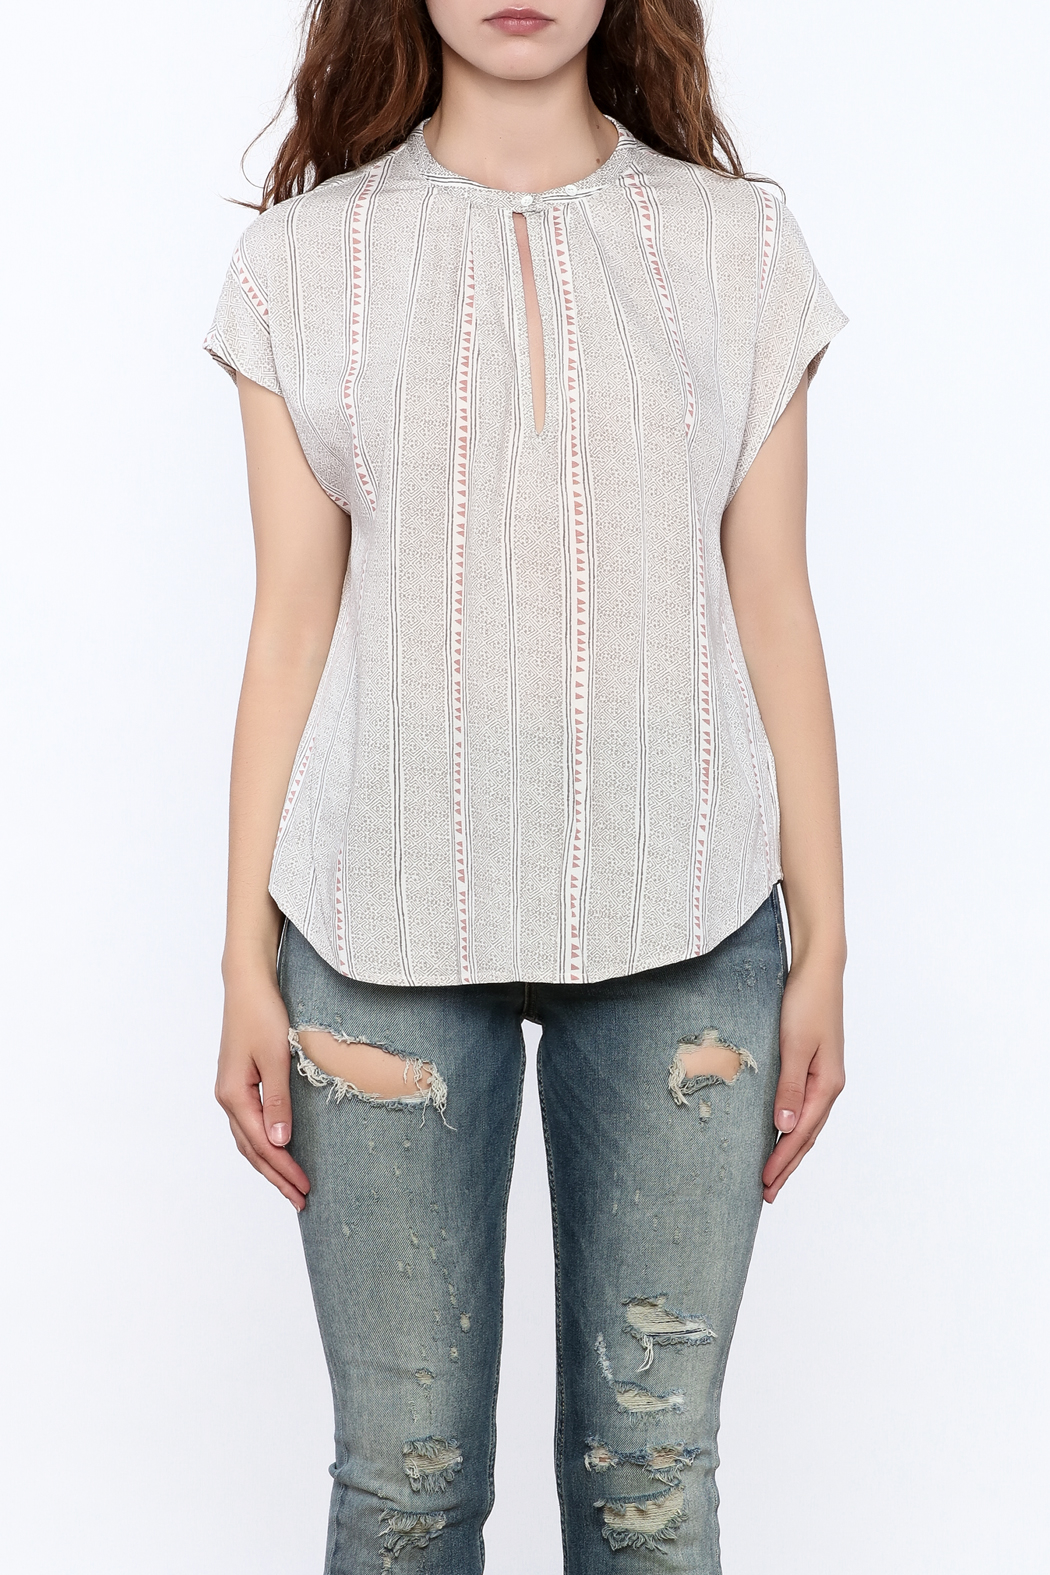 Gentle Fawn Grey Rowan Top - Side Cropped Image